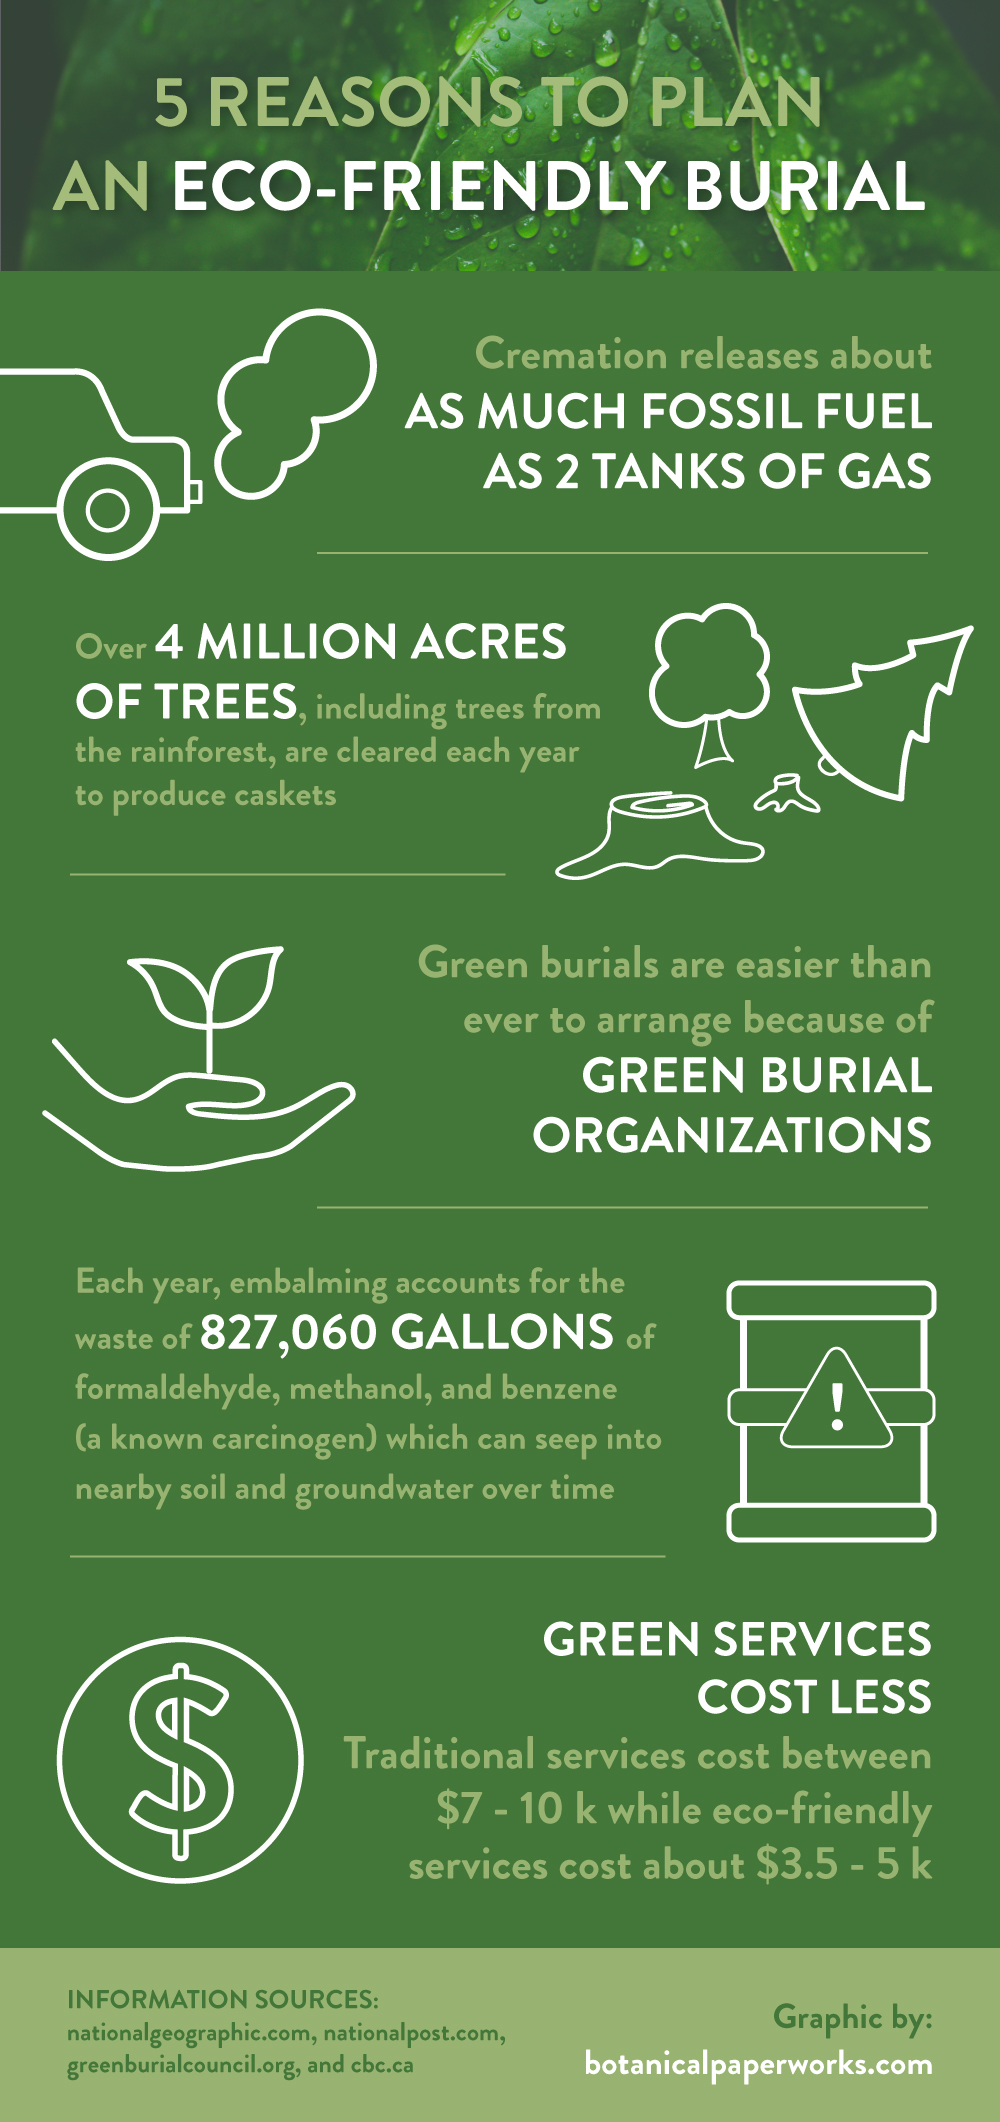 5 Reasons To Plan An Eco-friendly Burial